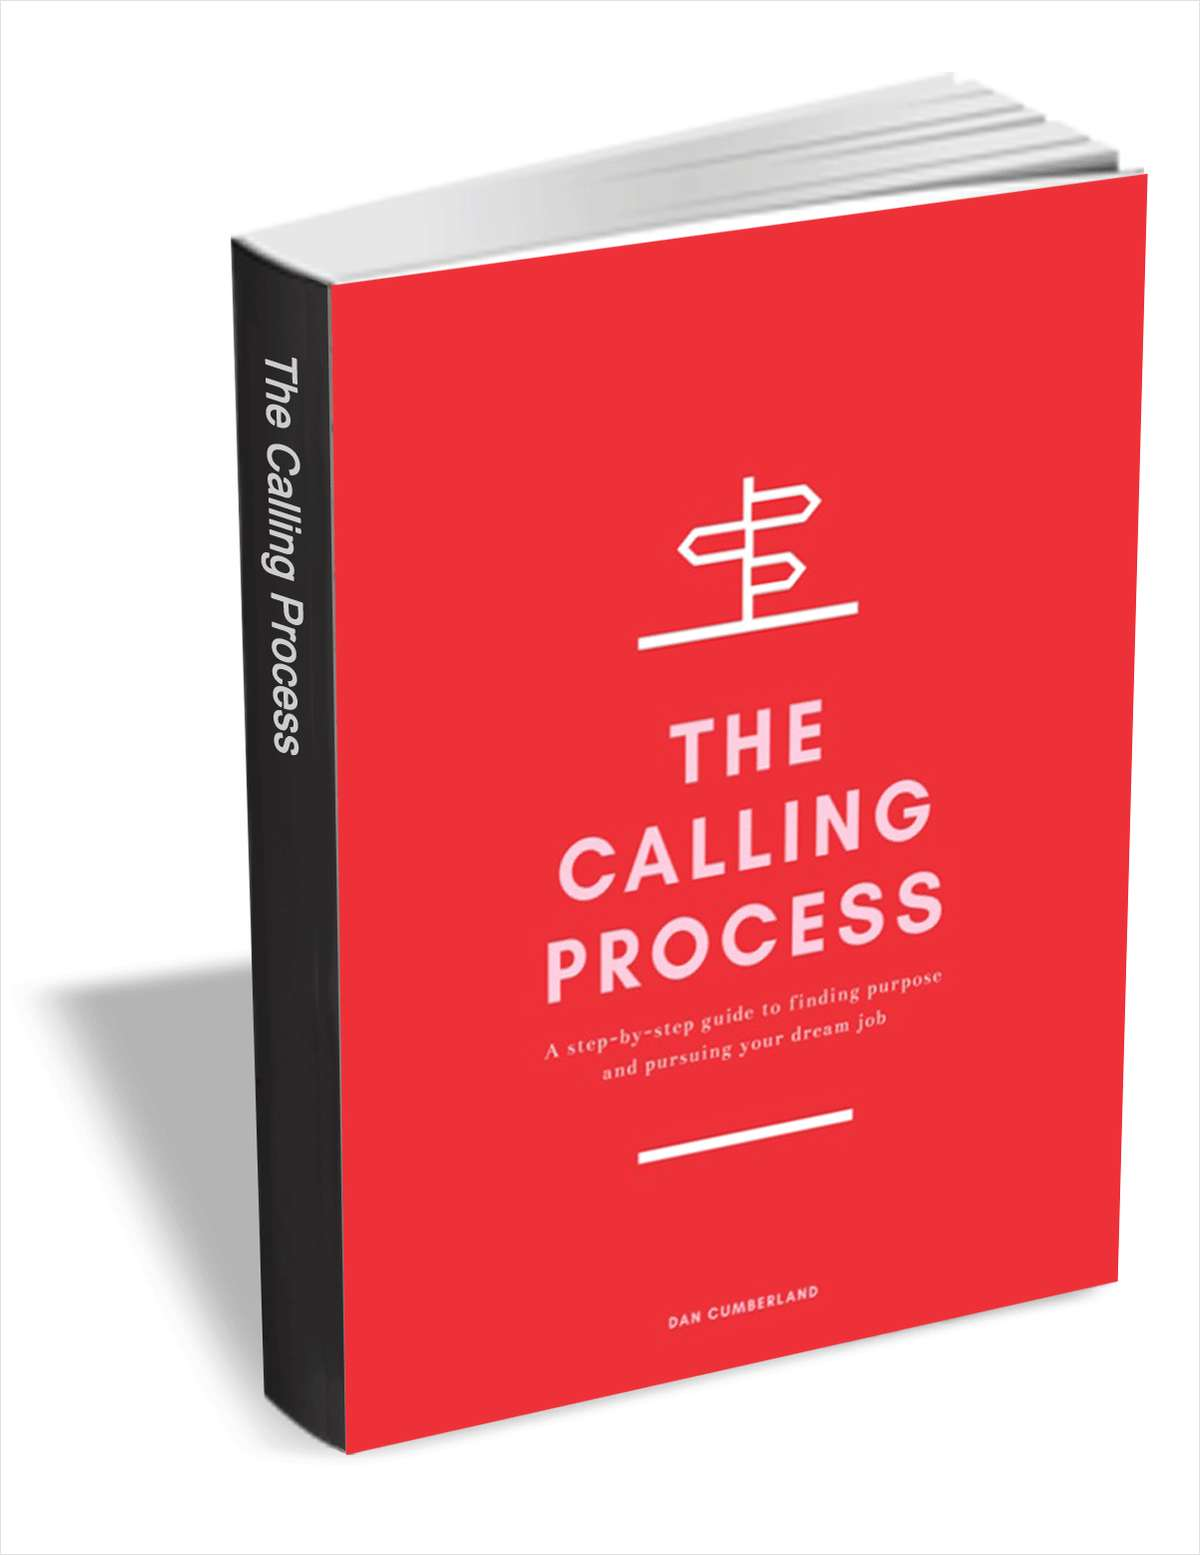 The Calling Process - A Step-by-Step Guide to Finding Purpose and Pursuing Your Dream Job